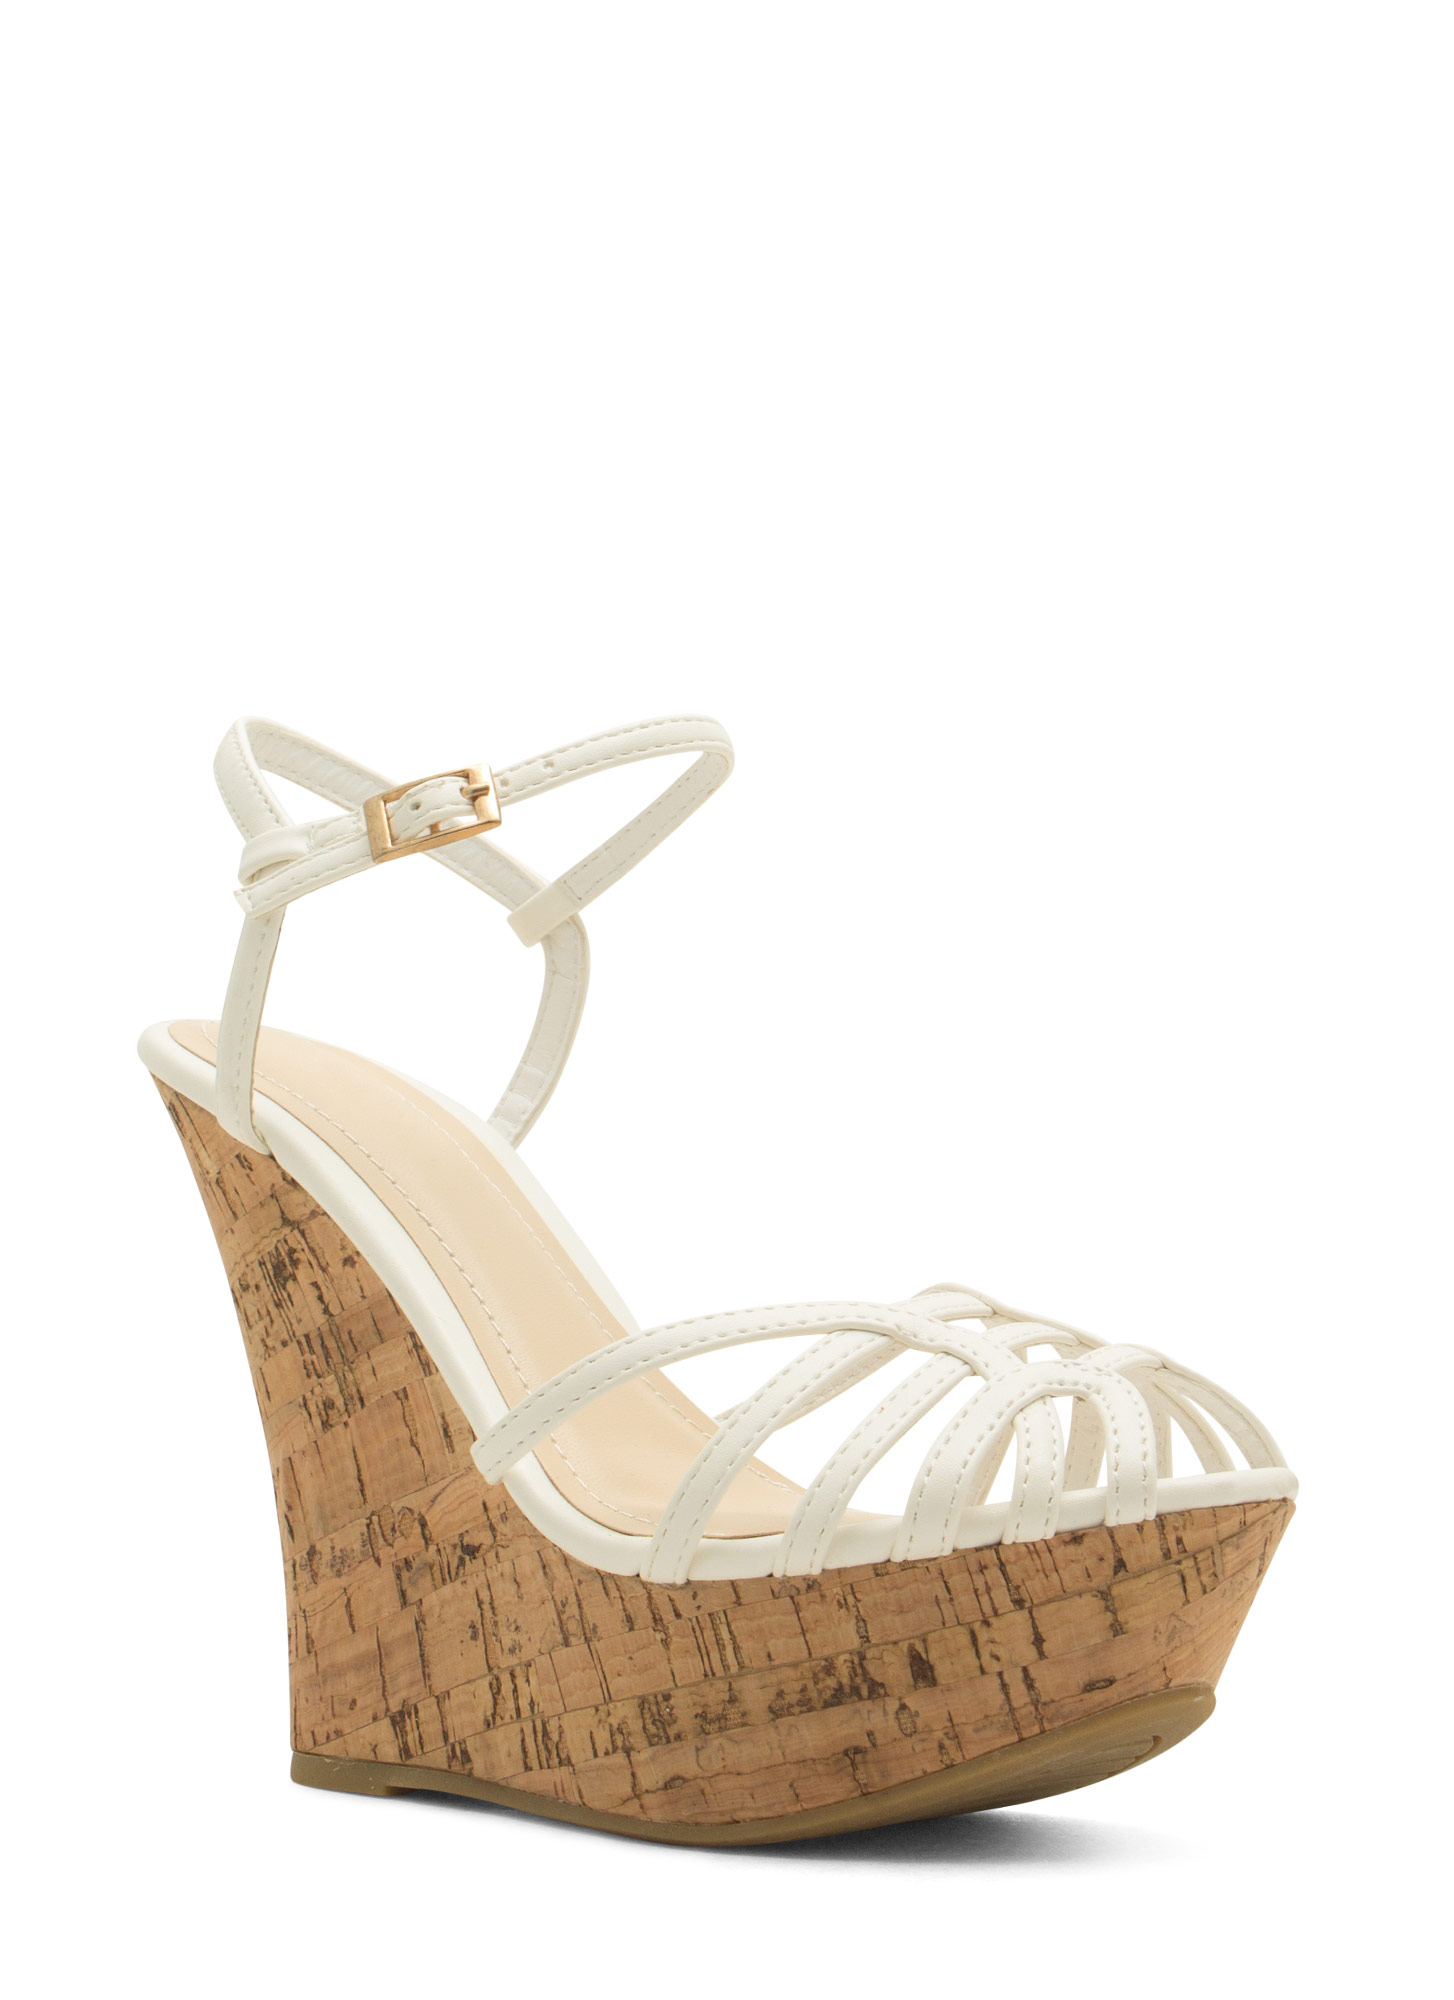 Corked 'N Caged Platform Wedges WHITE